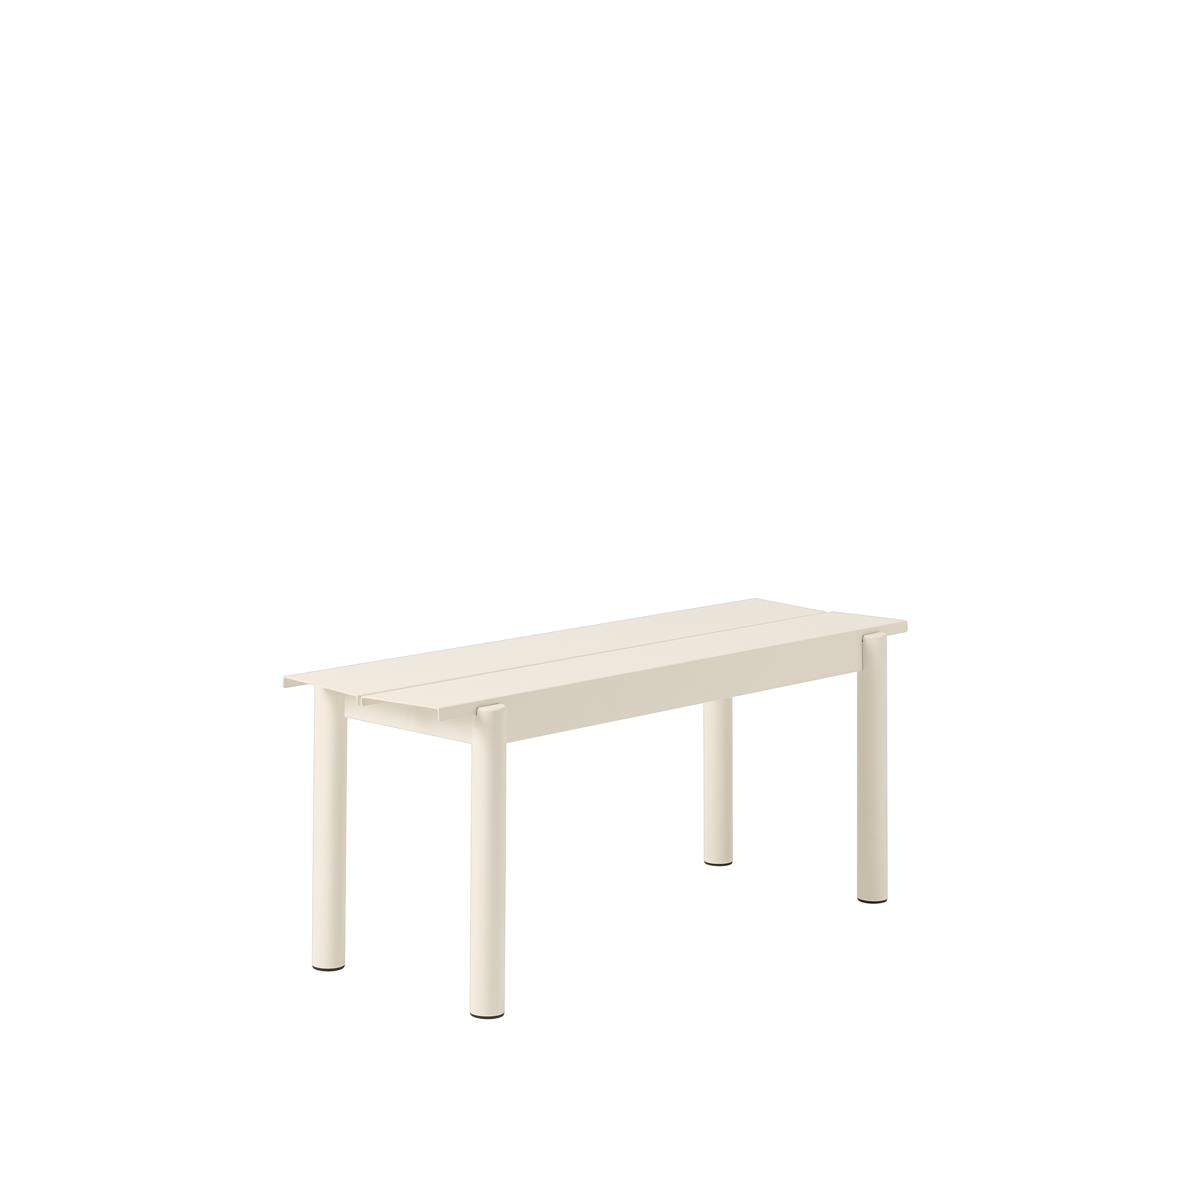 Linear Steel Bench 110 x H45,5 - White